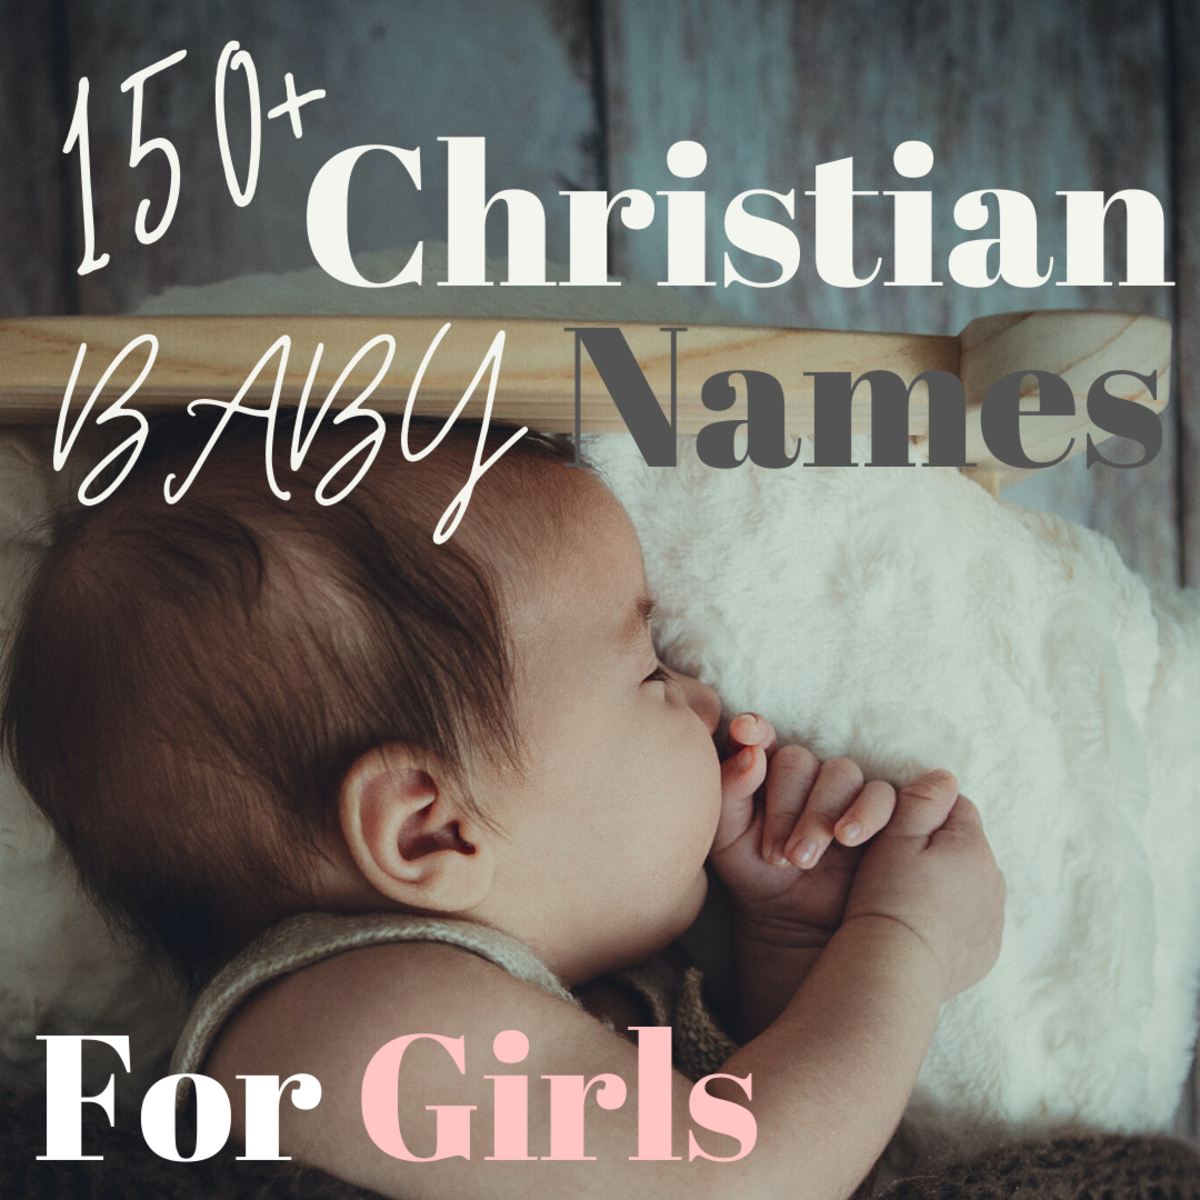 150+ Christian Baby Names for Girls